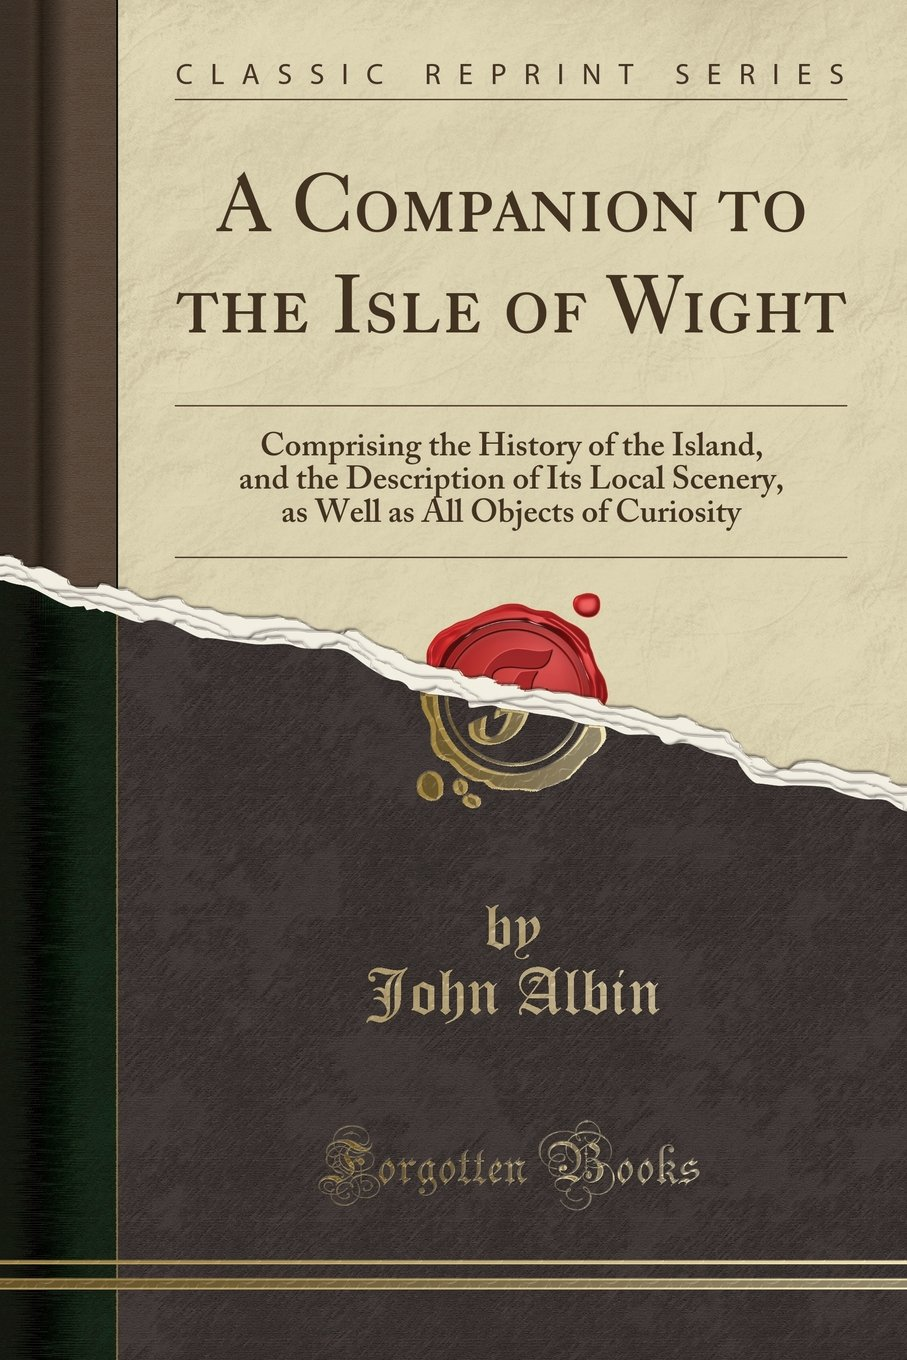 Download A Companion to the Isle of Wight: Comprising the History of the Island, and the Description of Its Local Scenery, as Well as All Objects of Curiosity (Classic Reprint) pdf epub